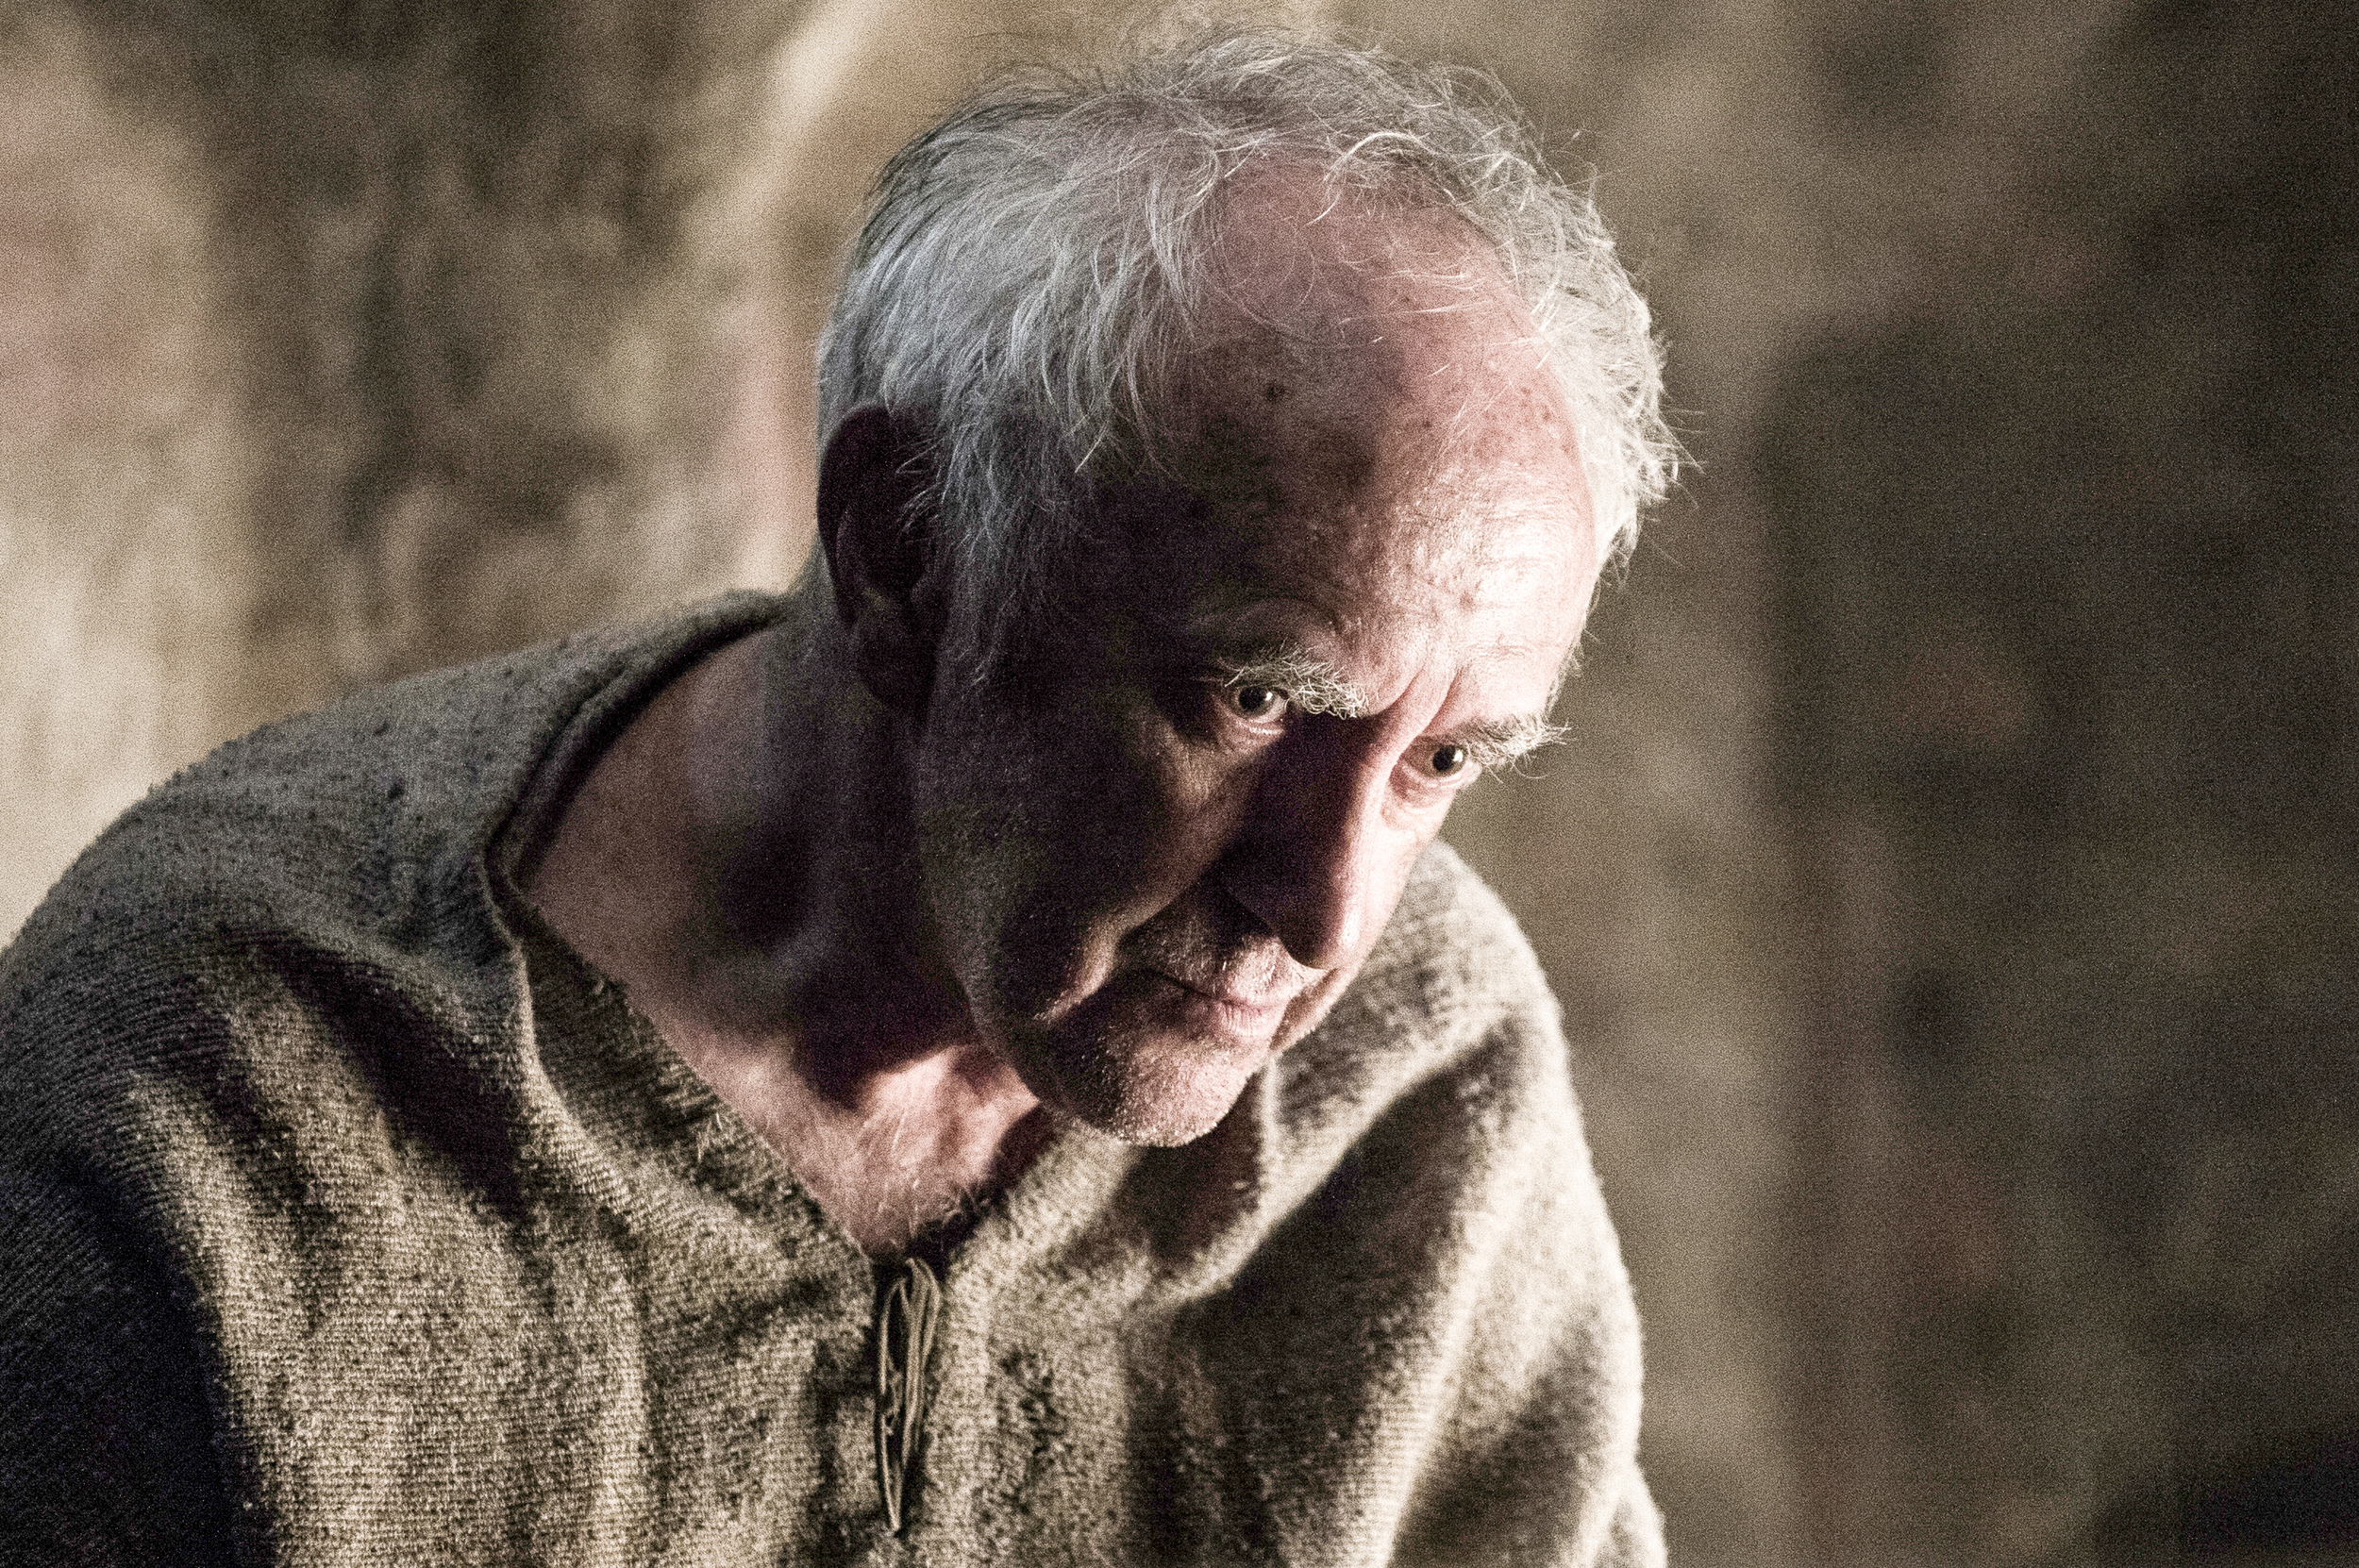 game of thrones season 6 photos, high sparrow